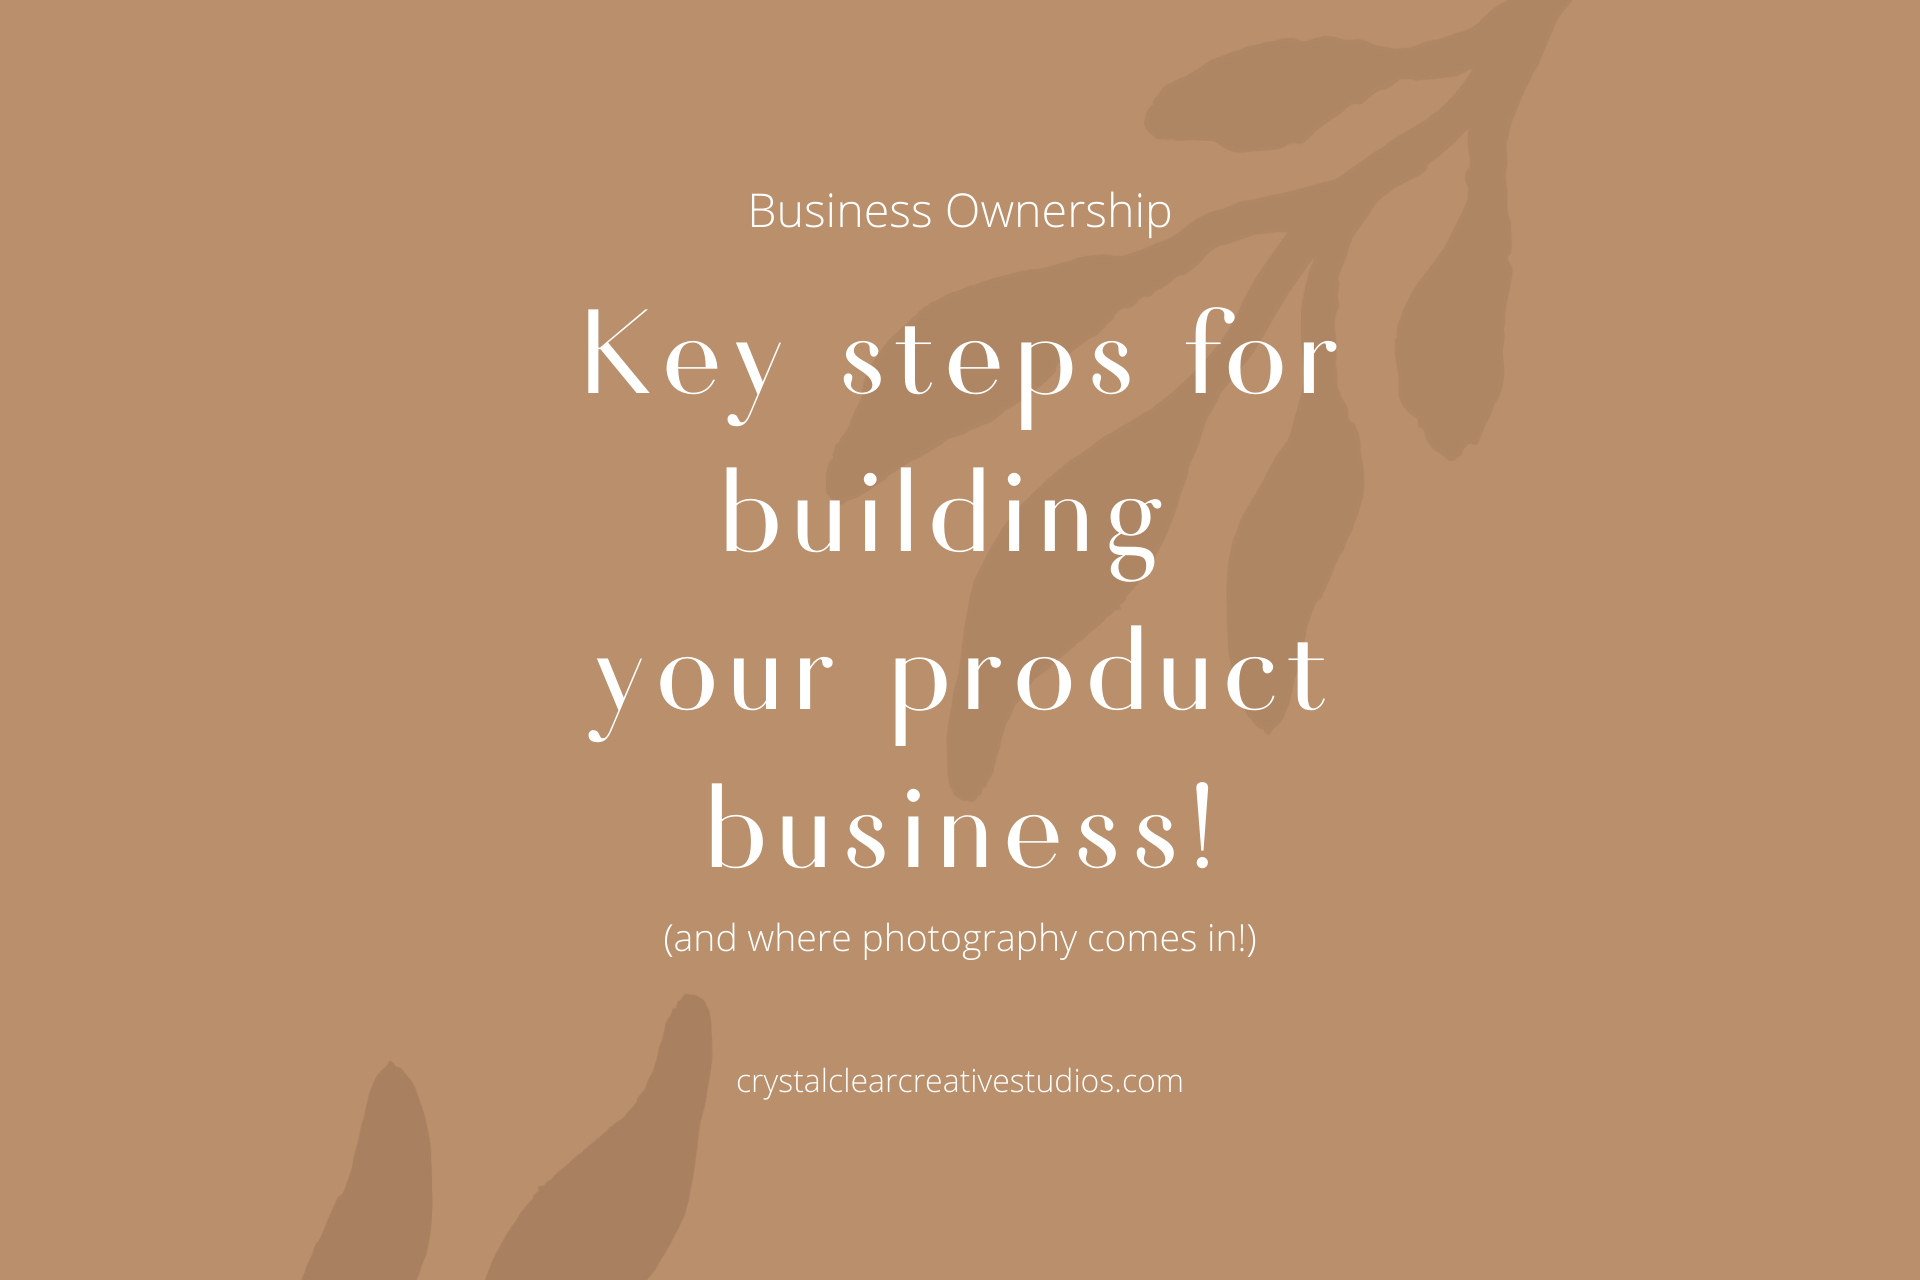 Key Steps For Building Your Product Business (And Where Photography Comes In!)